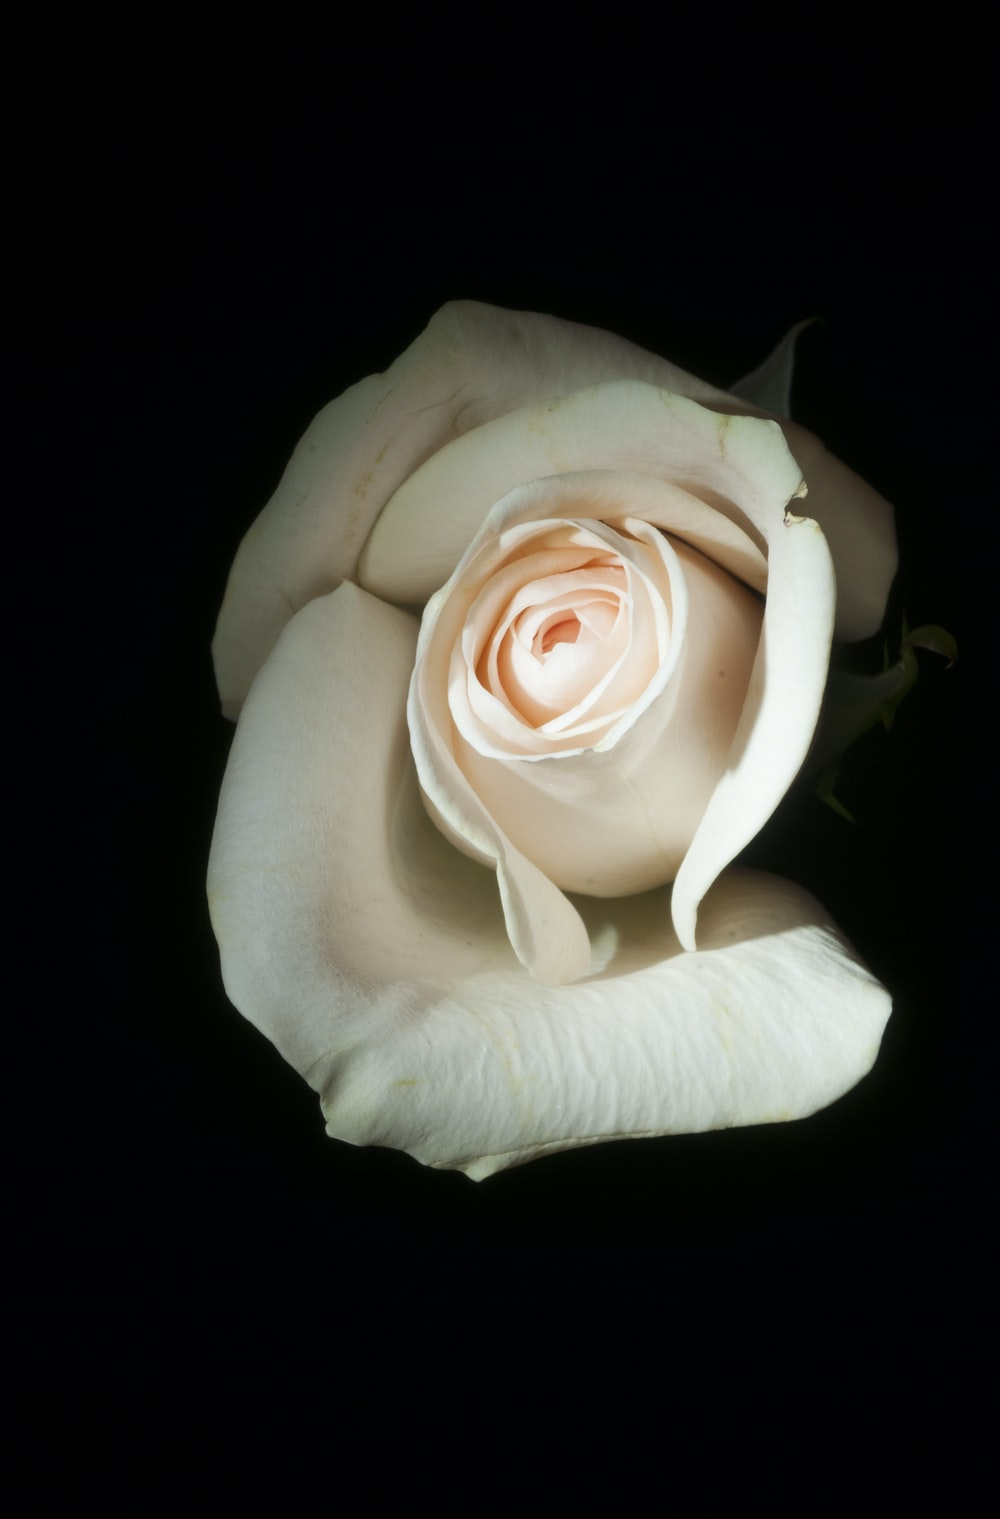 Flower Rose White And Floral Hd Photo By Sebastian Molina